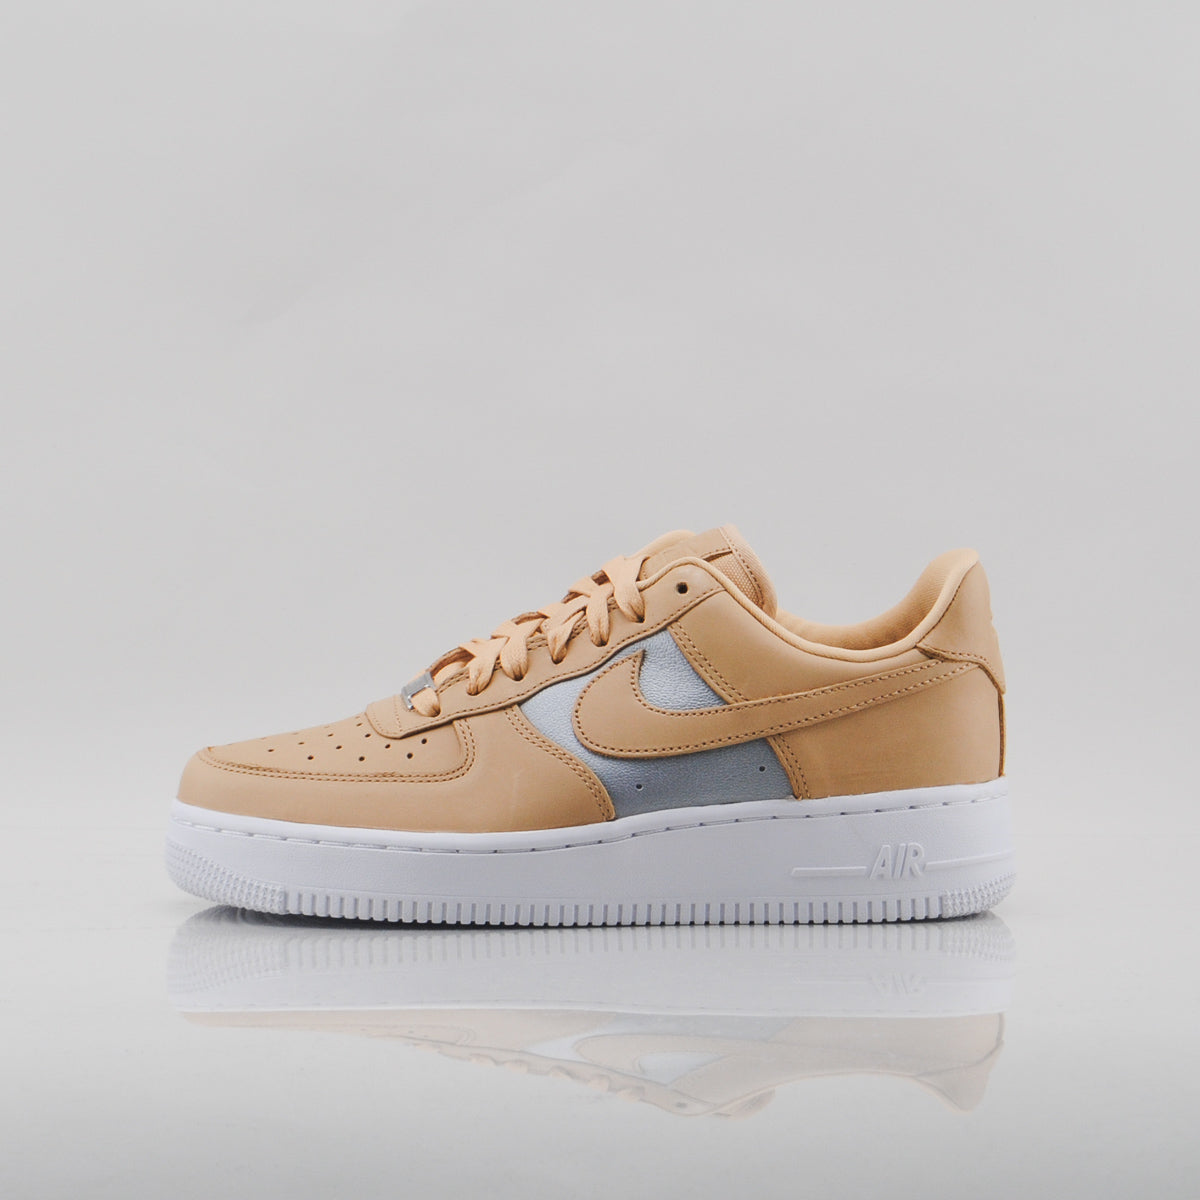 Nike Air Force 1'07 Se Prm - AH6827-200